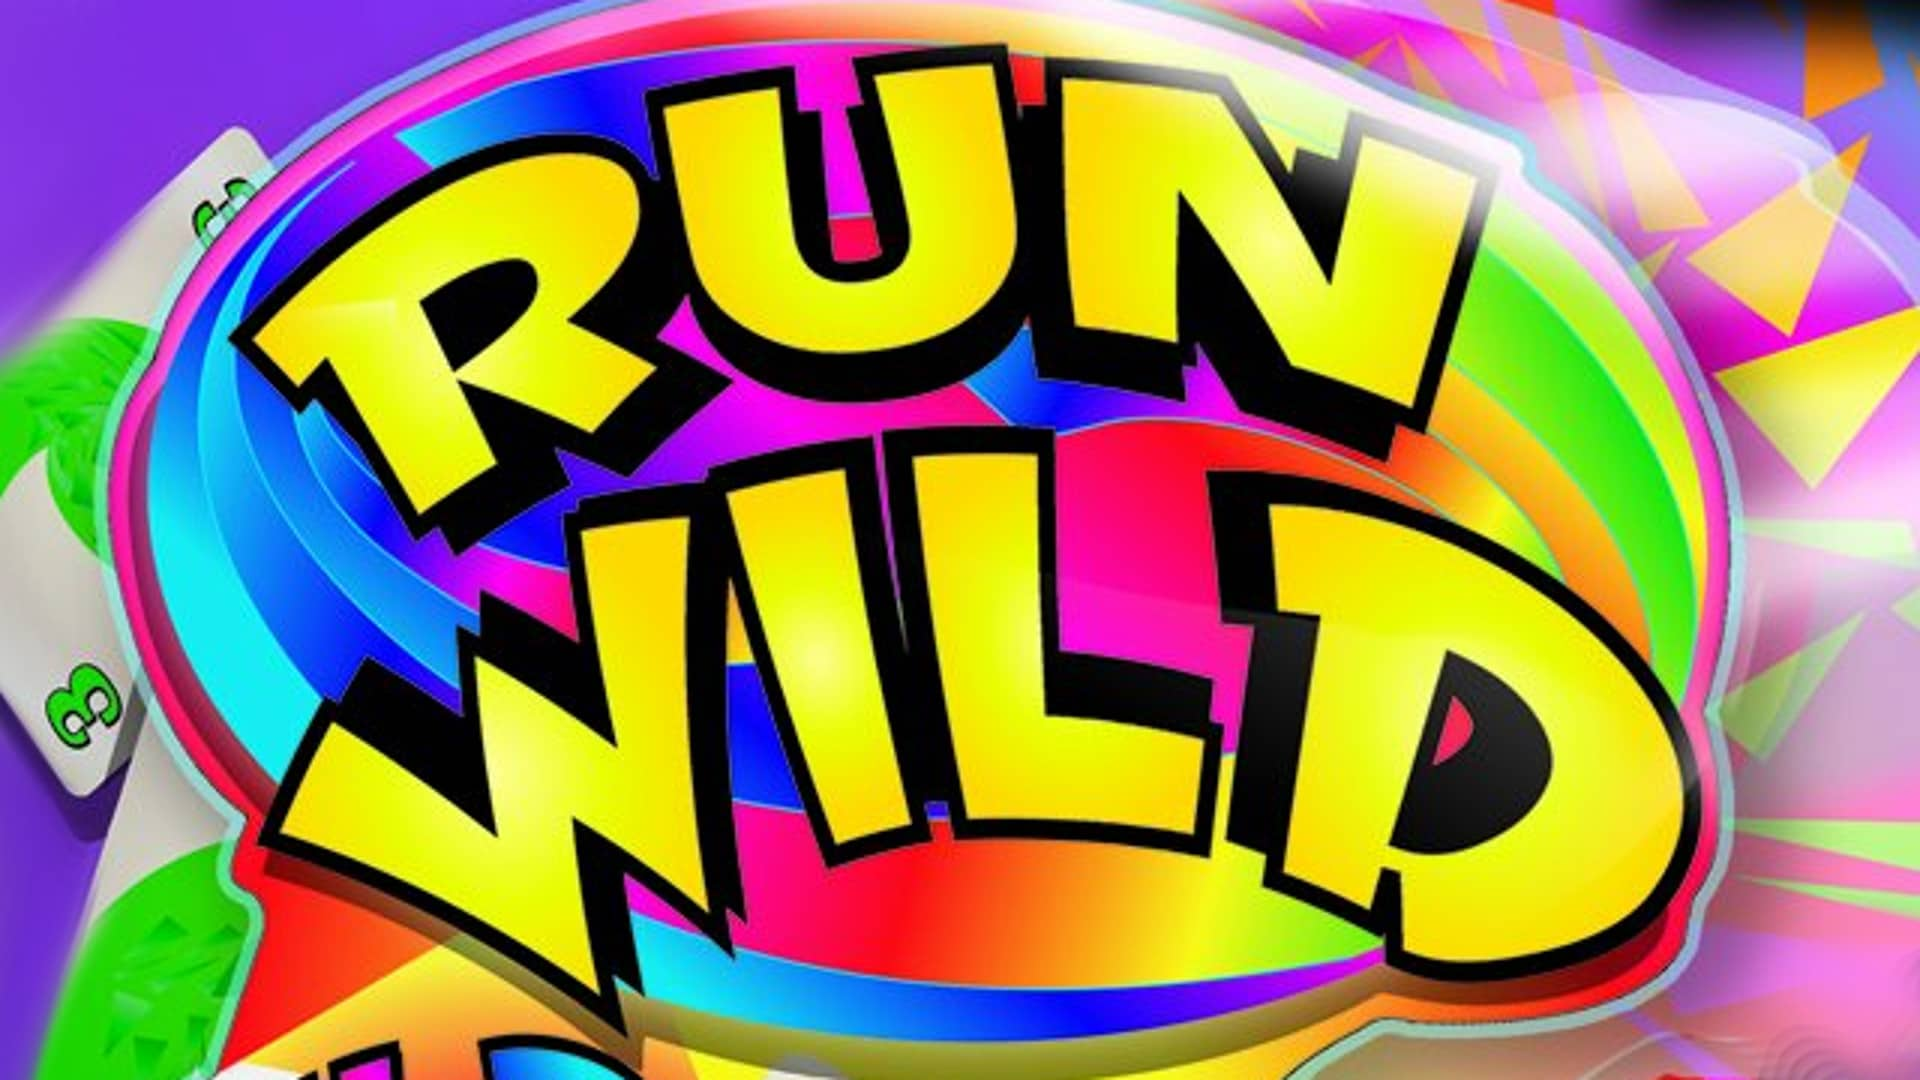 Run Wild Game Rules and How to Play Guide